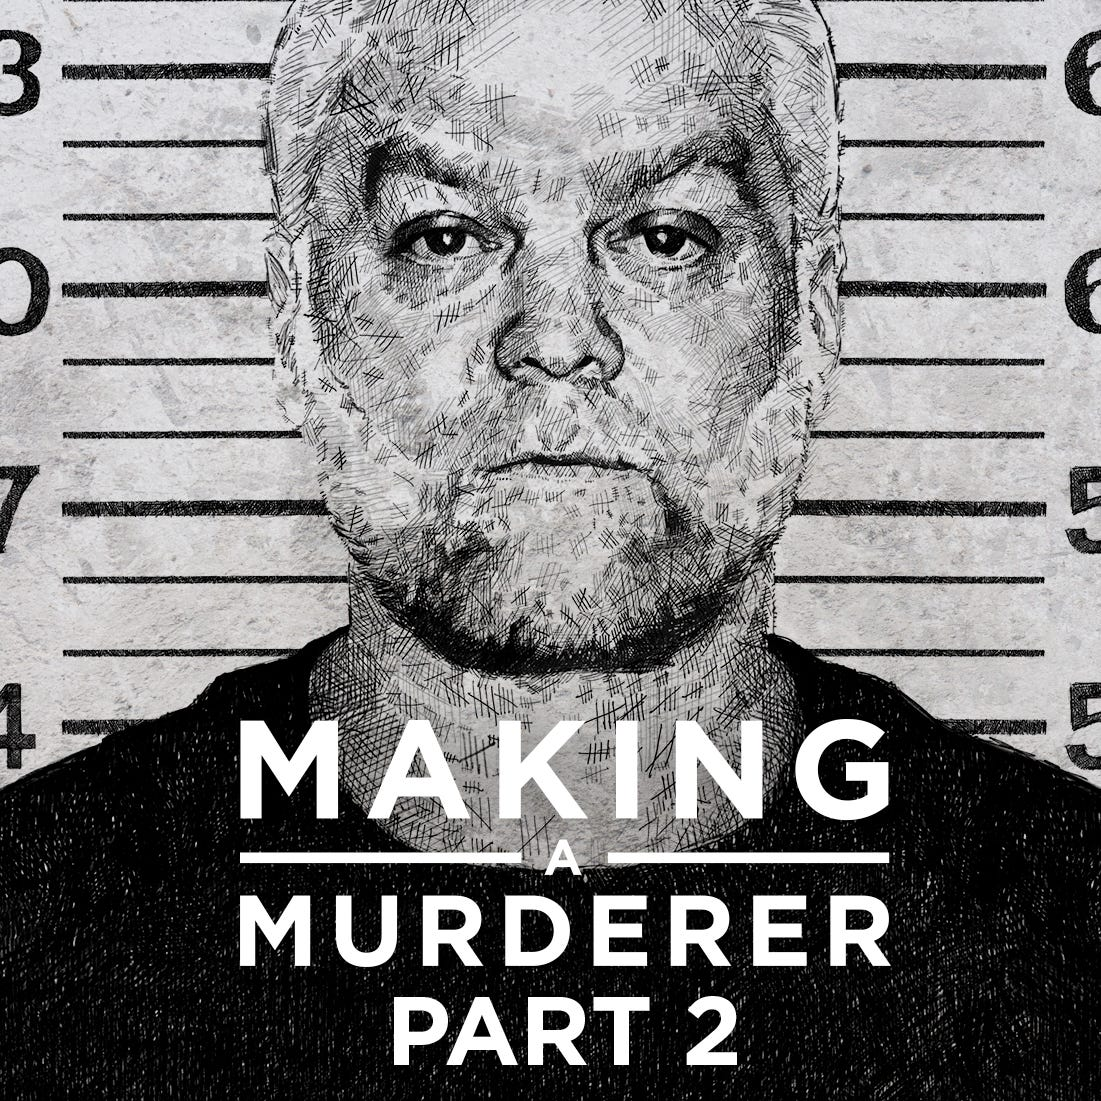 'Making a Murderer Part 2' to show more of victim Teresa Halbach's life, filmmakers say